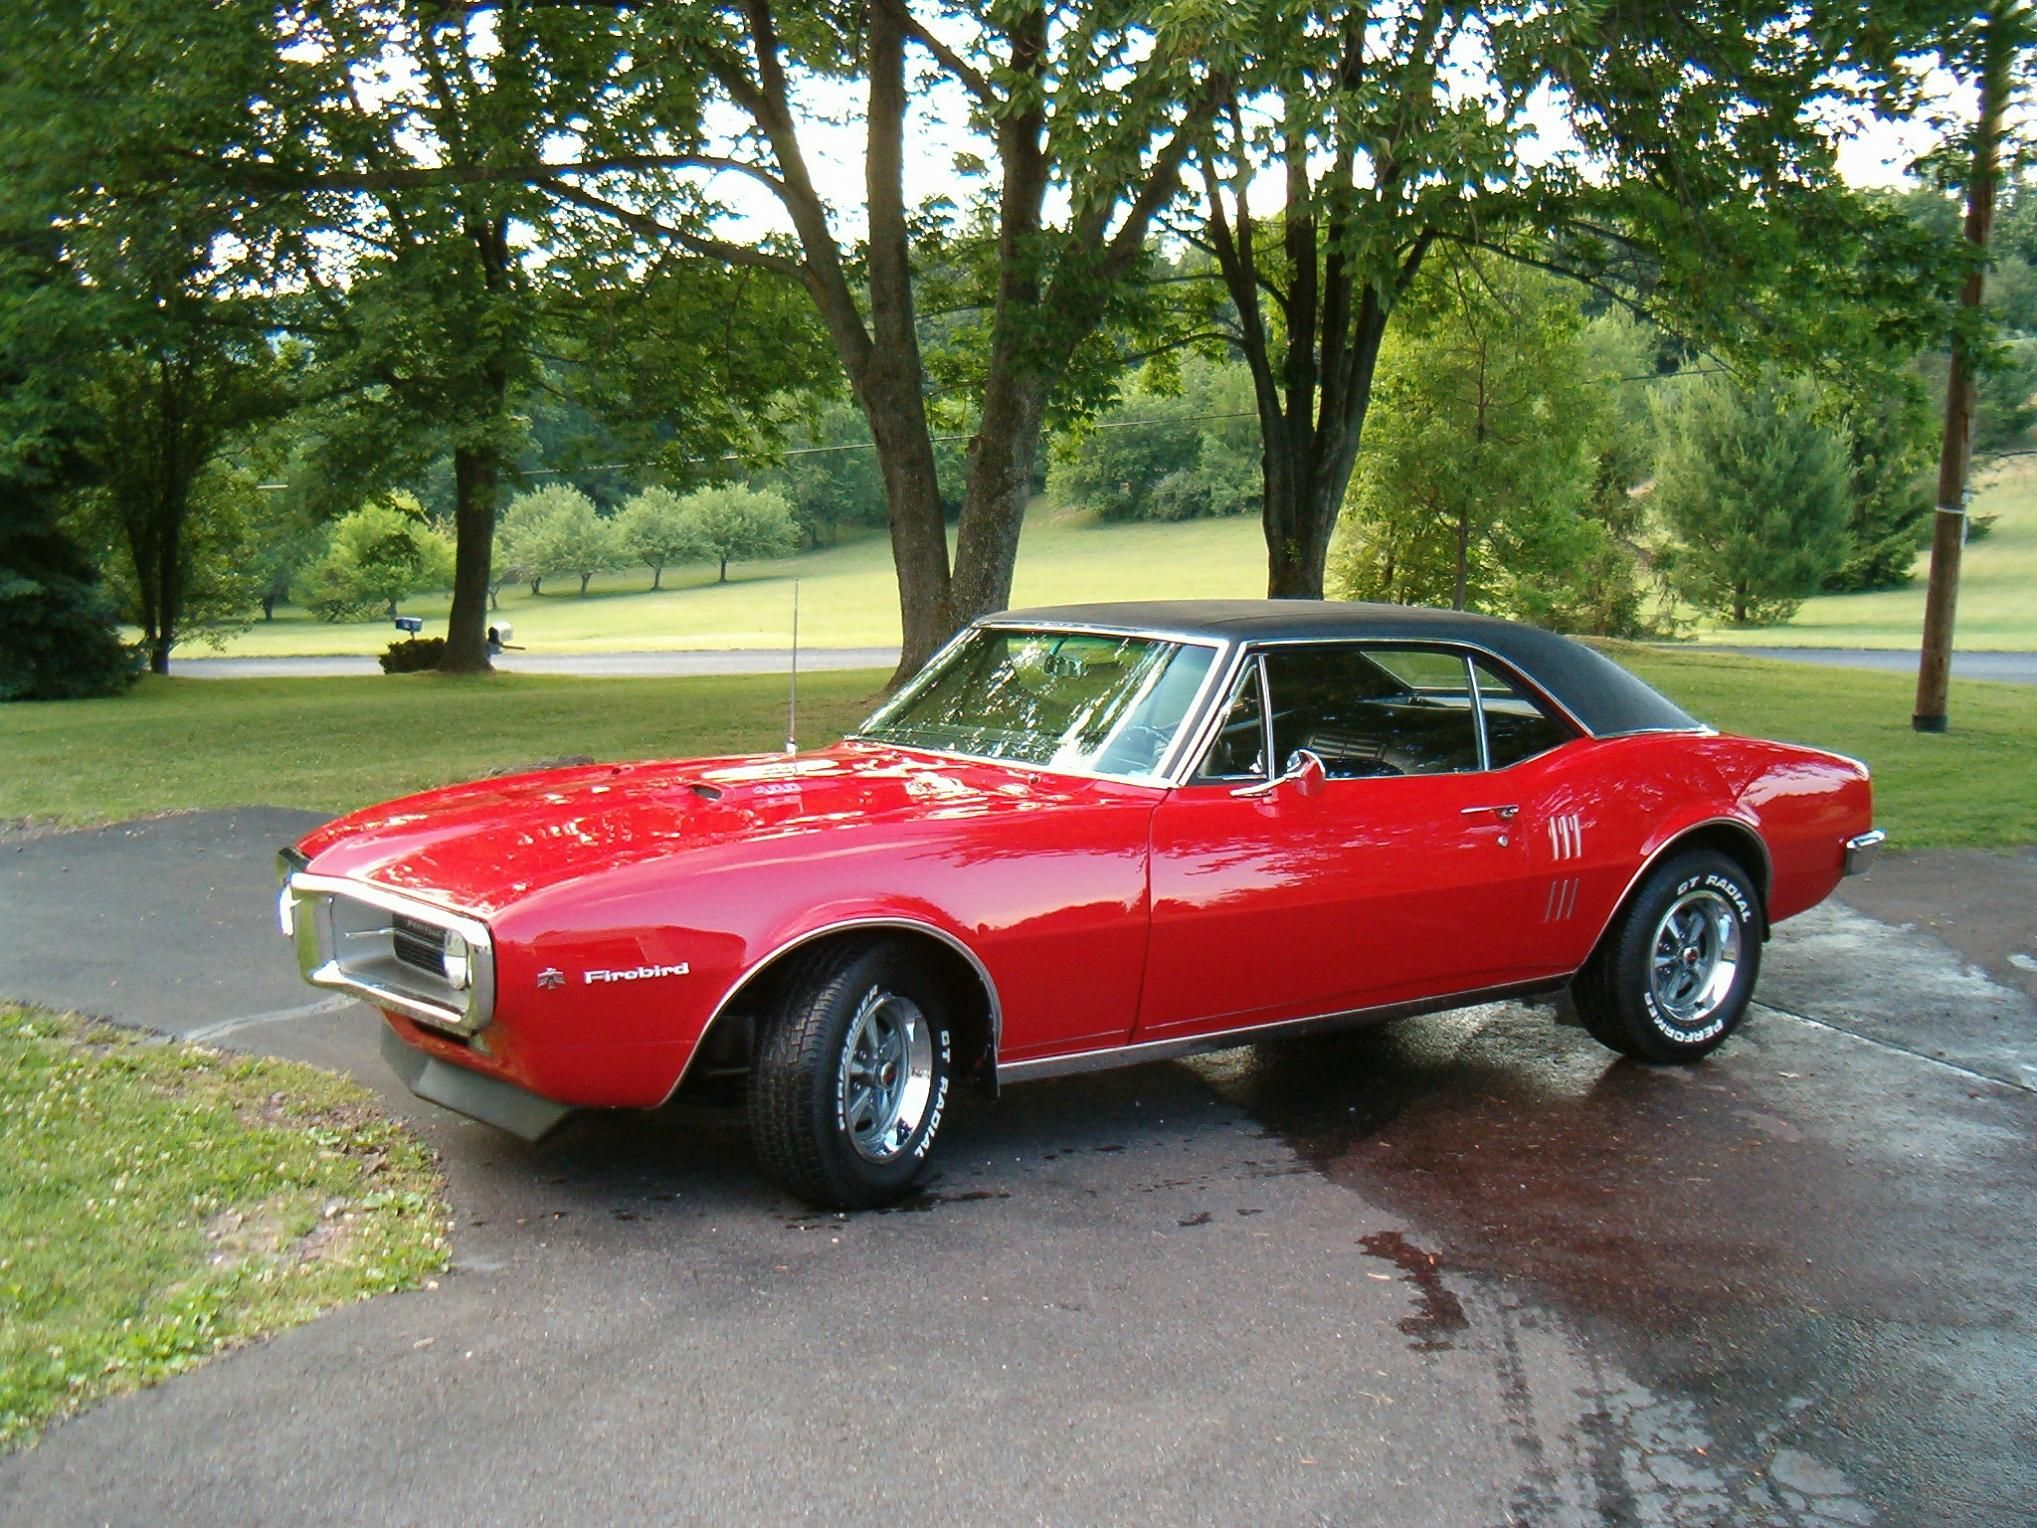 1967 Firebird The First Car I Got To Drive As A 16 Year Old Young Man Sweet